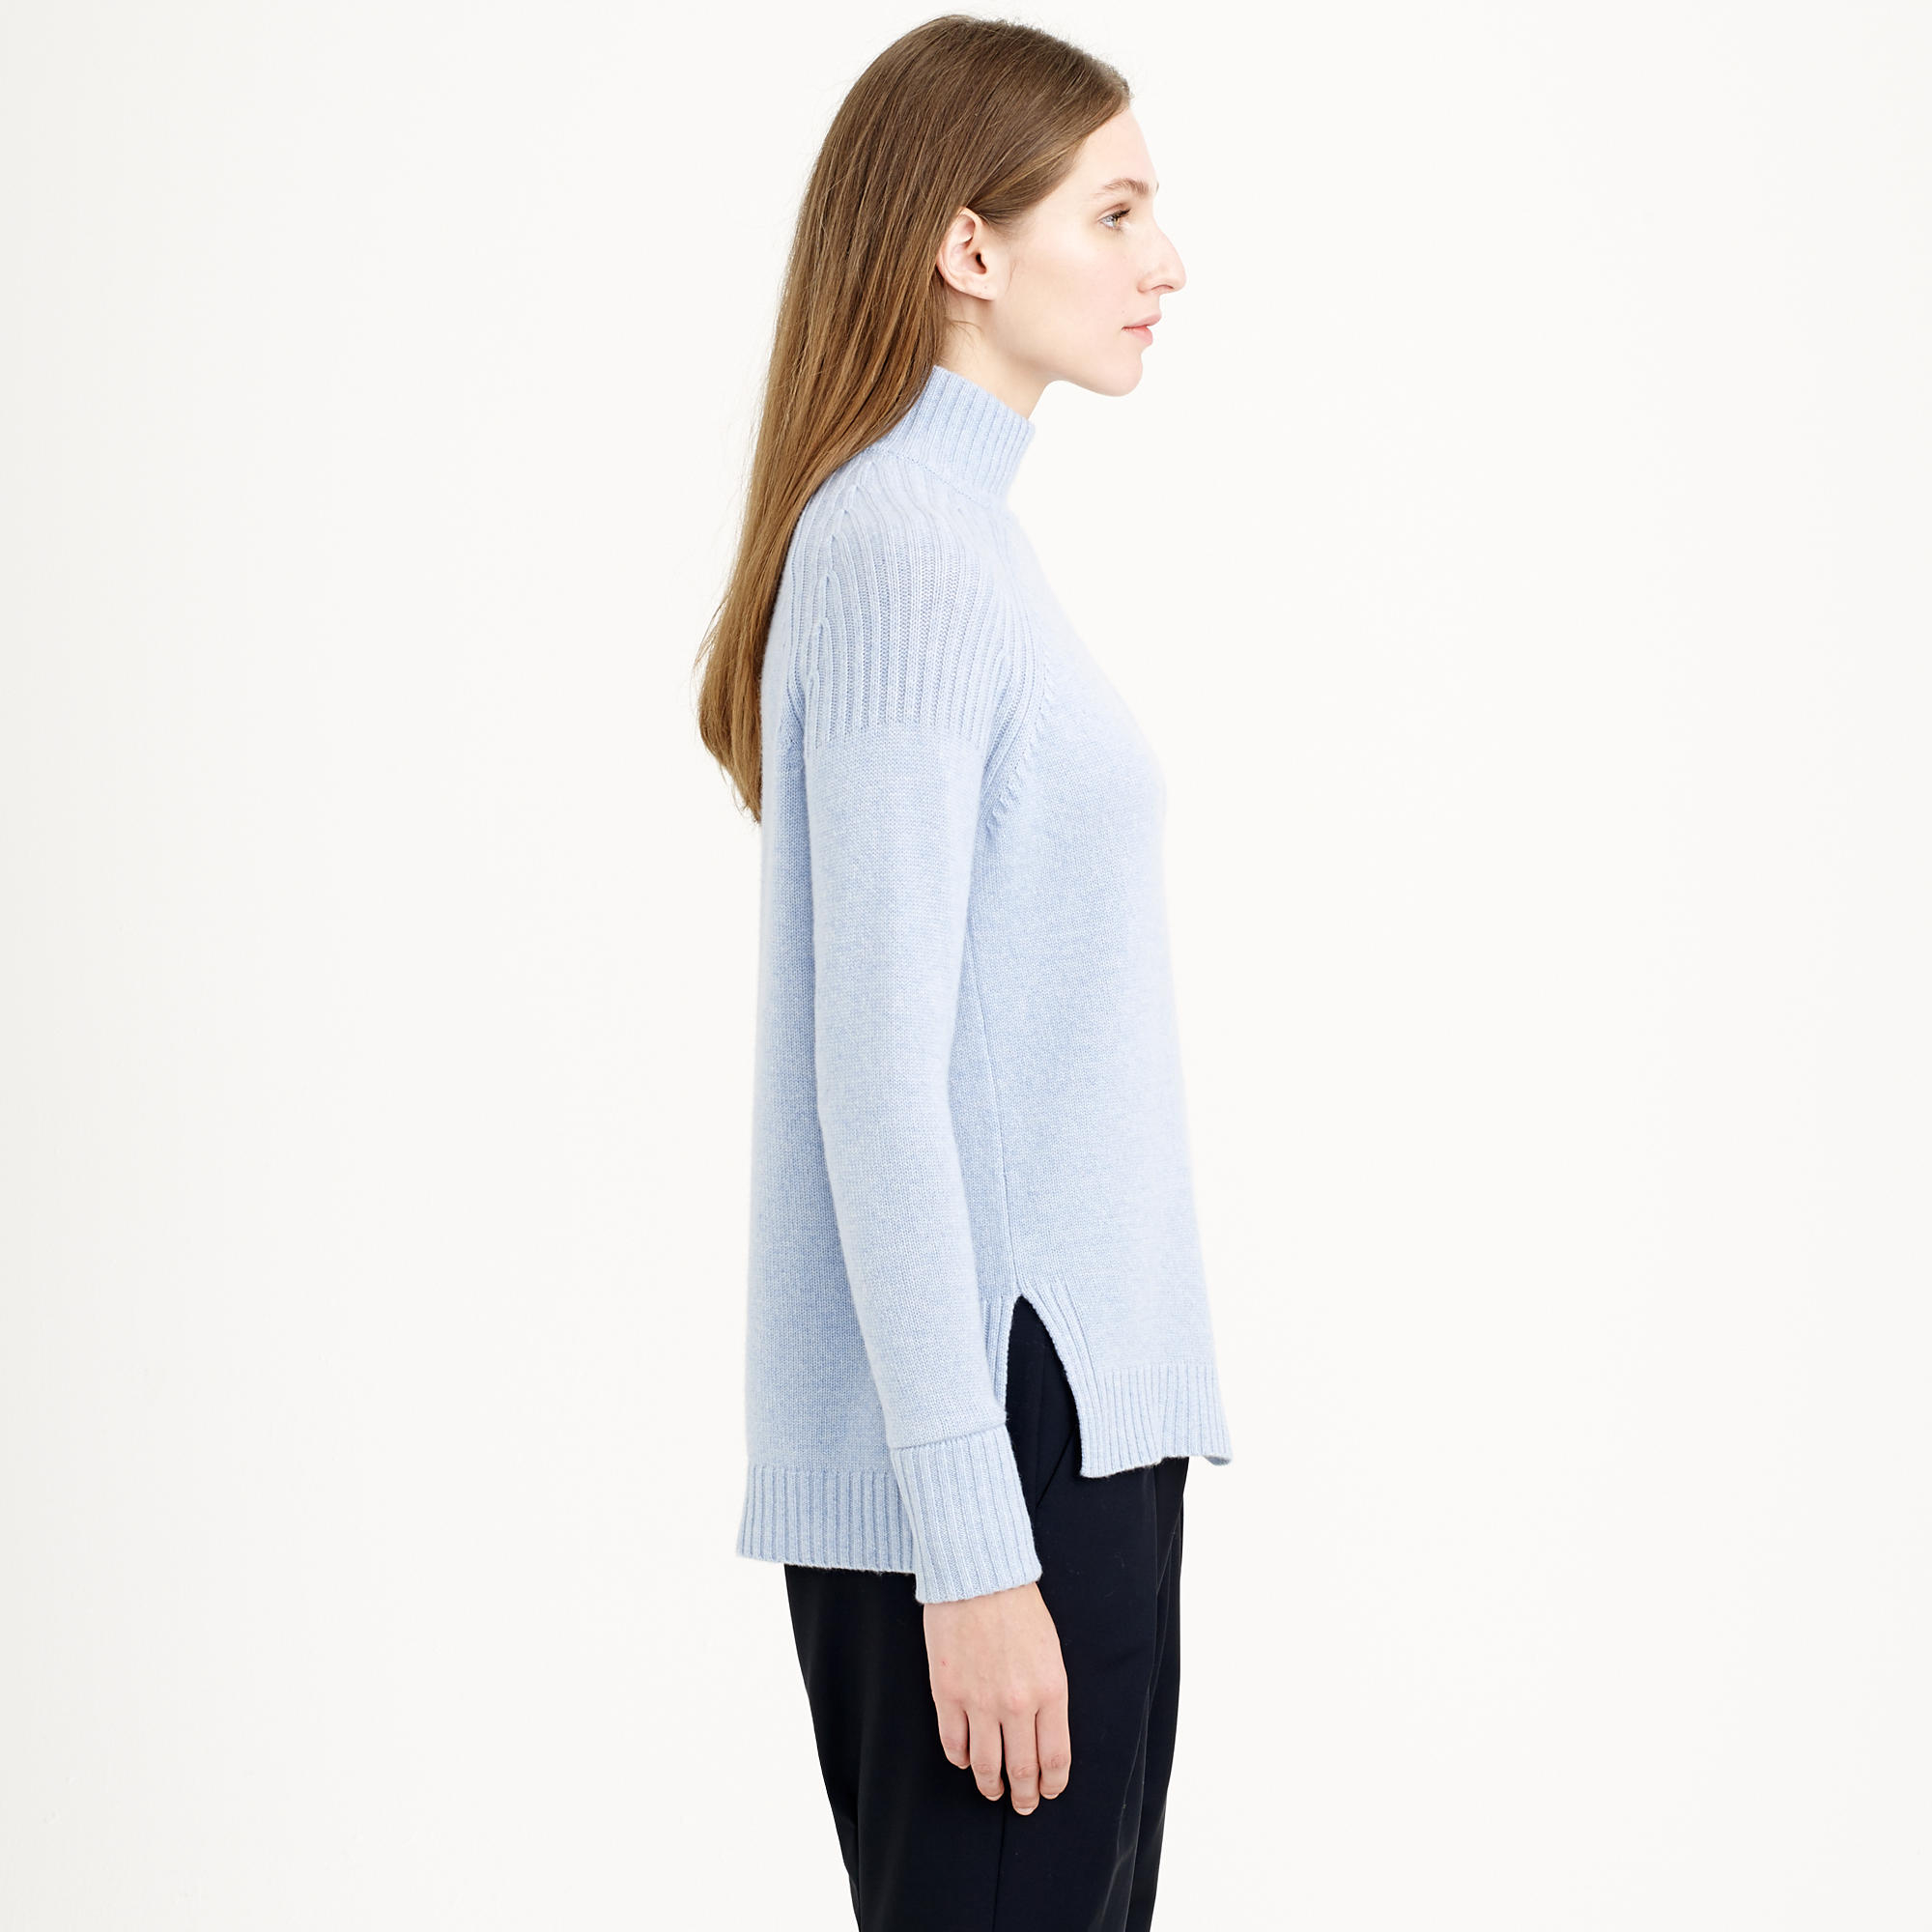 J.crew Collection Cashmere Back-Zip Turtleneck Sweater in Blue | Lyst